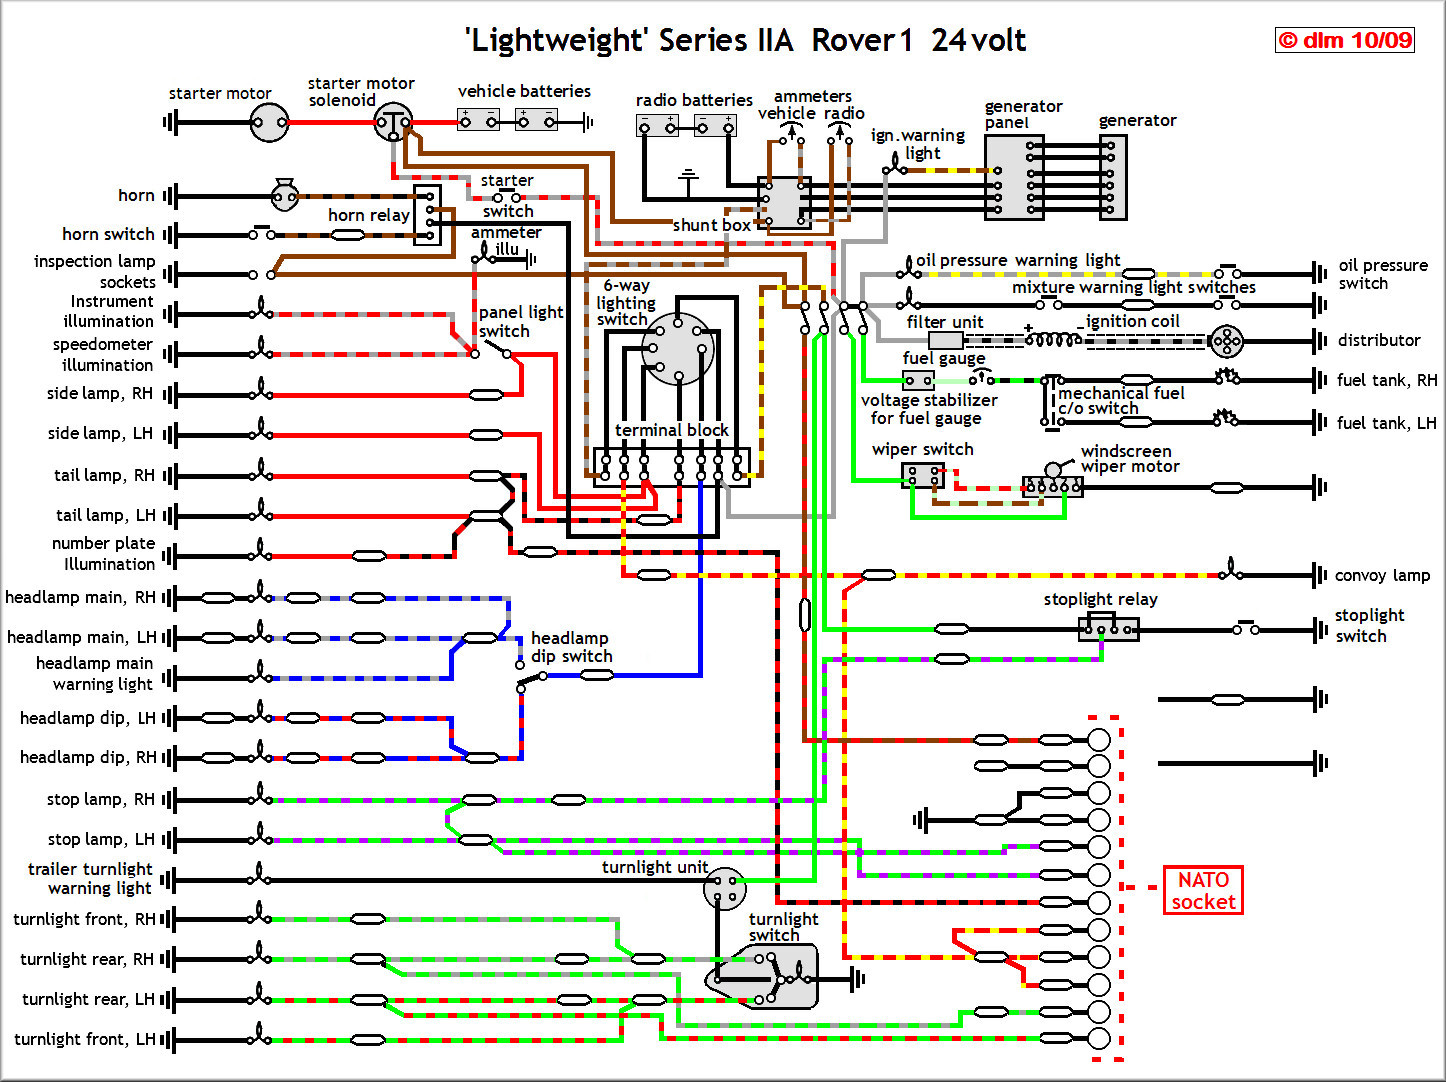 2006 Land Rover Wiring Diagram Just Another Blog Additionally Car Horn On Wire Schematic Diagrams Rh 33 Koch Foerderbandtrommeln De Discovery